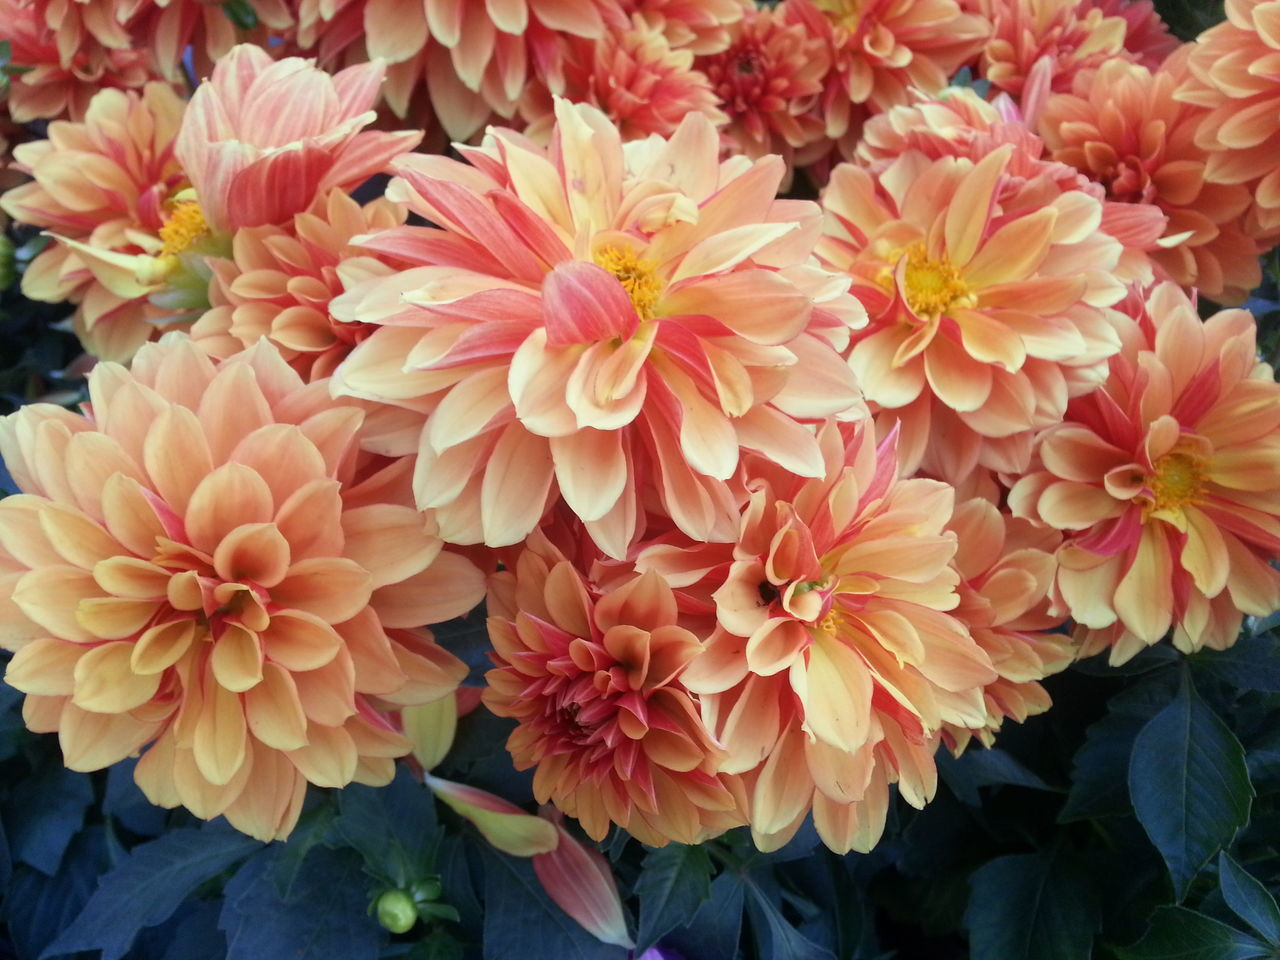 flower, petal, fragility, beauty in nature, nature, flower head, growth, freshness, plant, no people, blooming, outdoors, dahlia, day, close-up